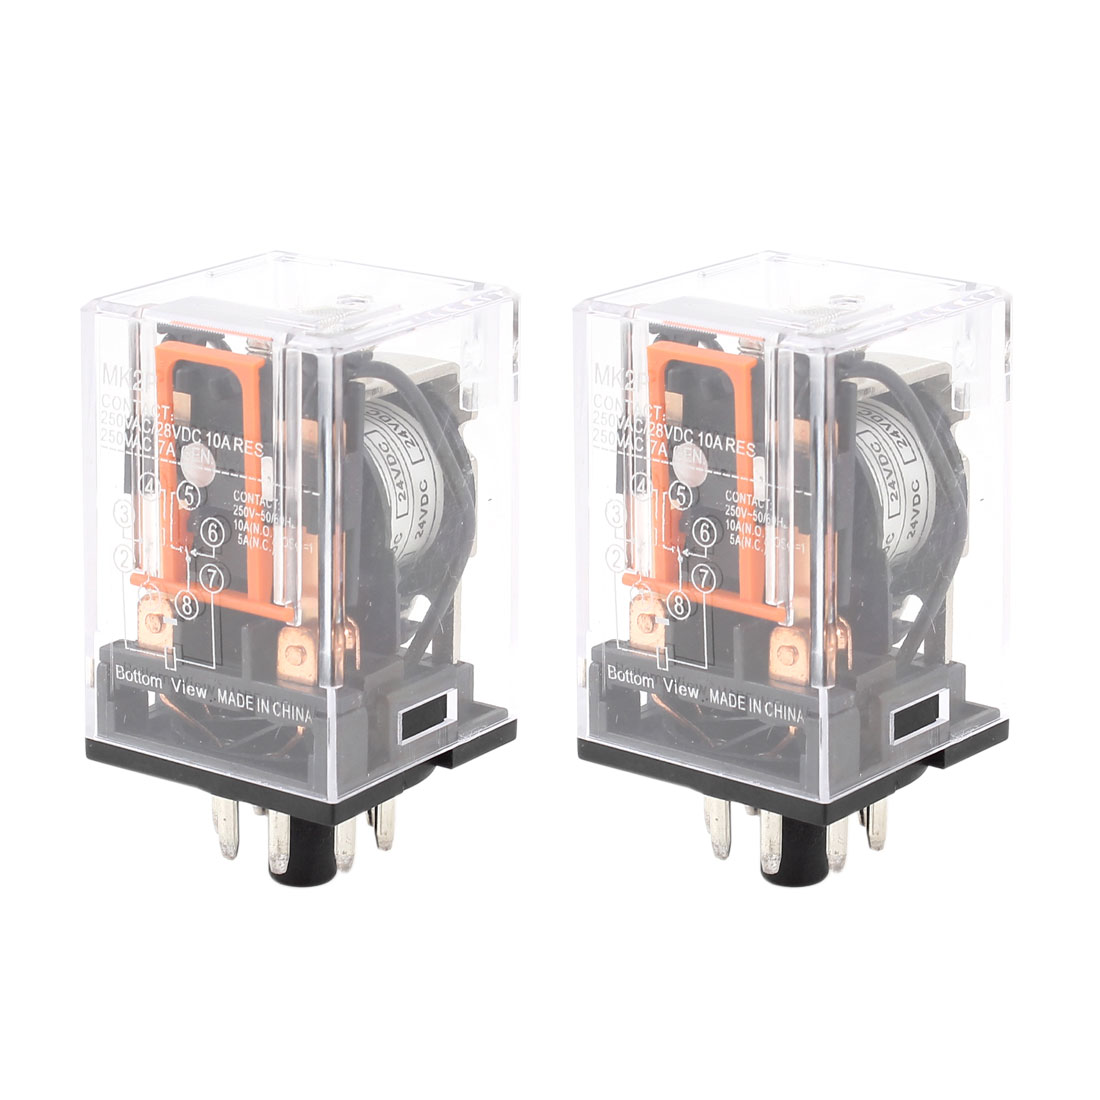 Motor Control 8 Pin DPDT DIN Rail Electromagnetic Relay DC 24V Coil 2 Pcs